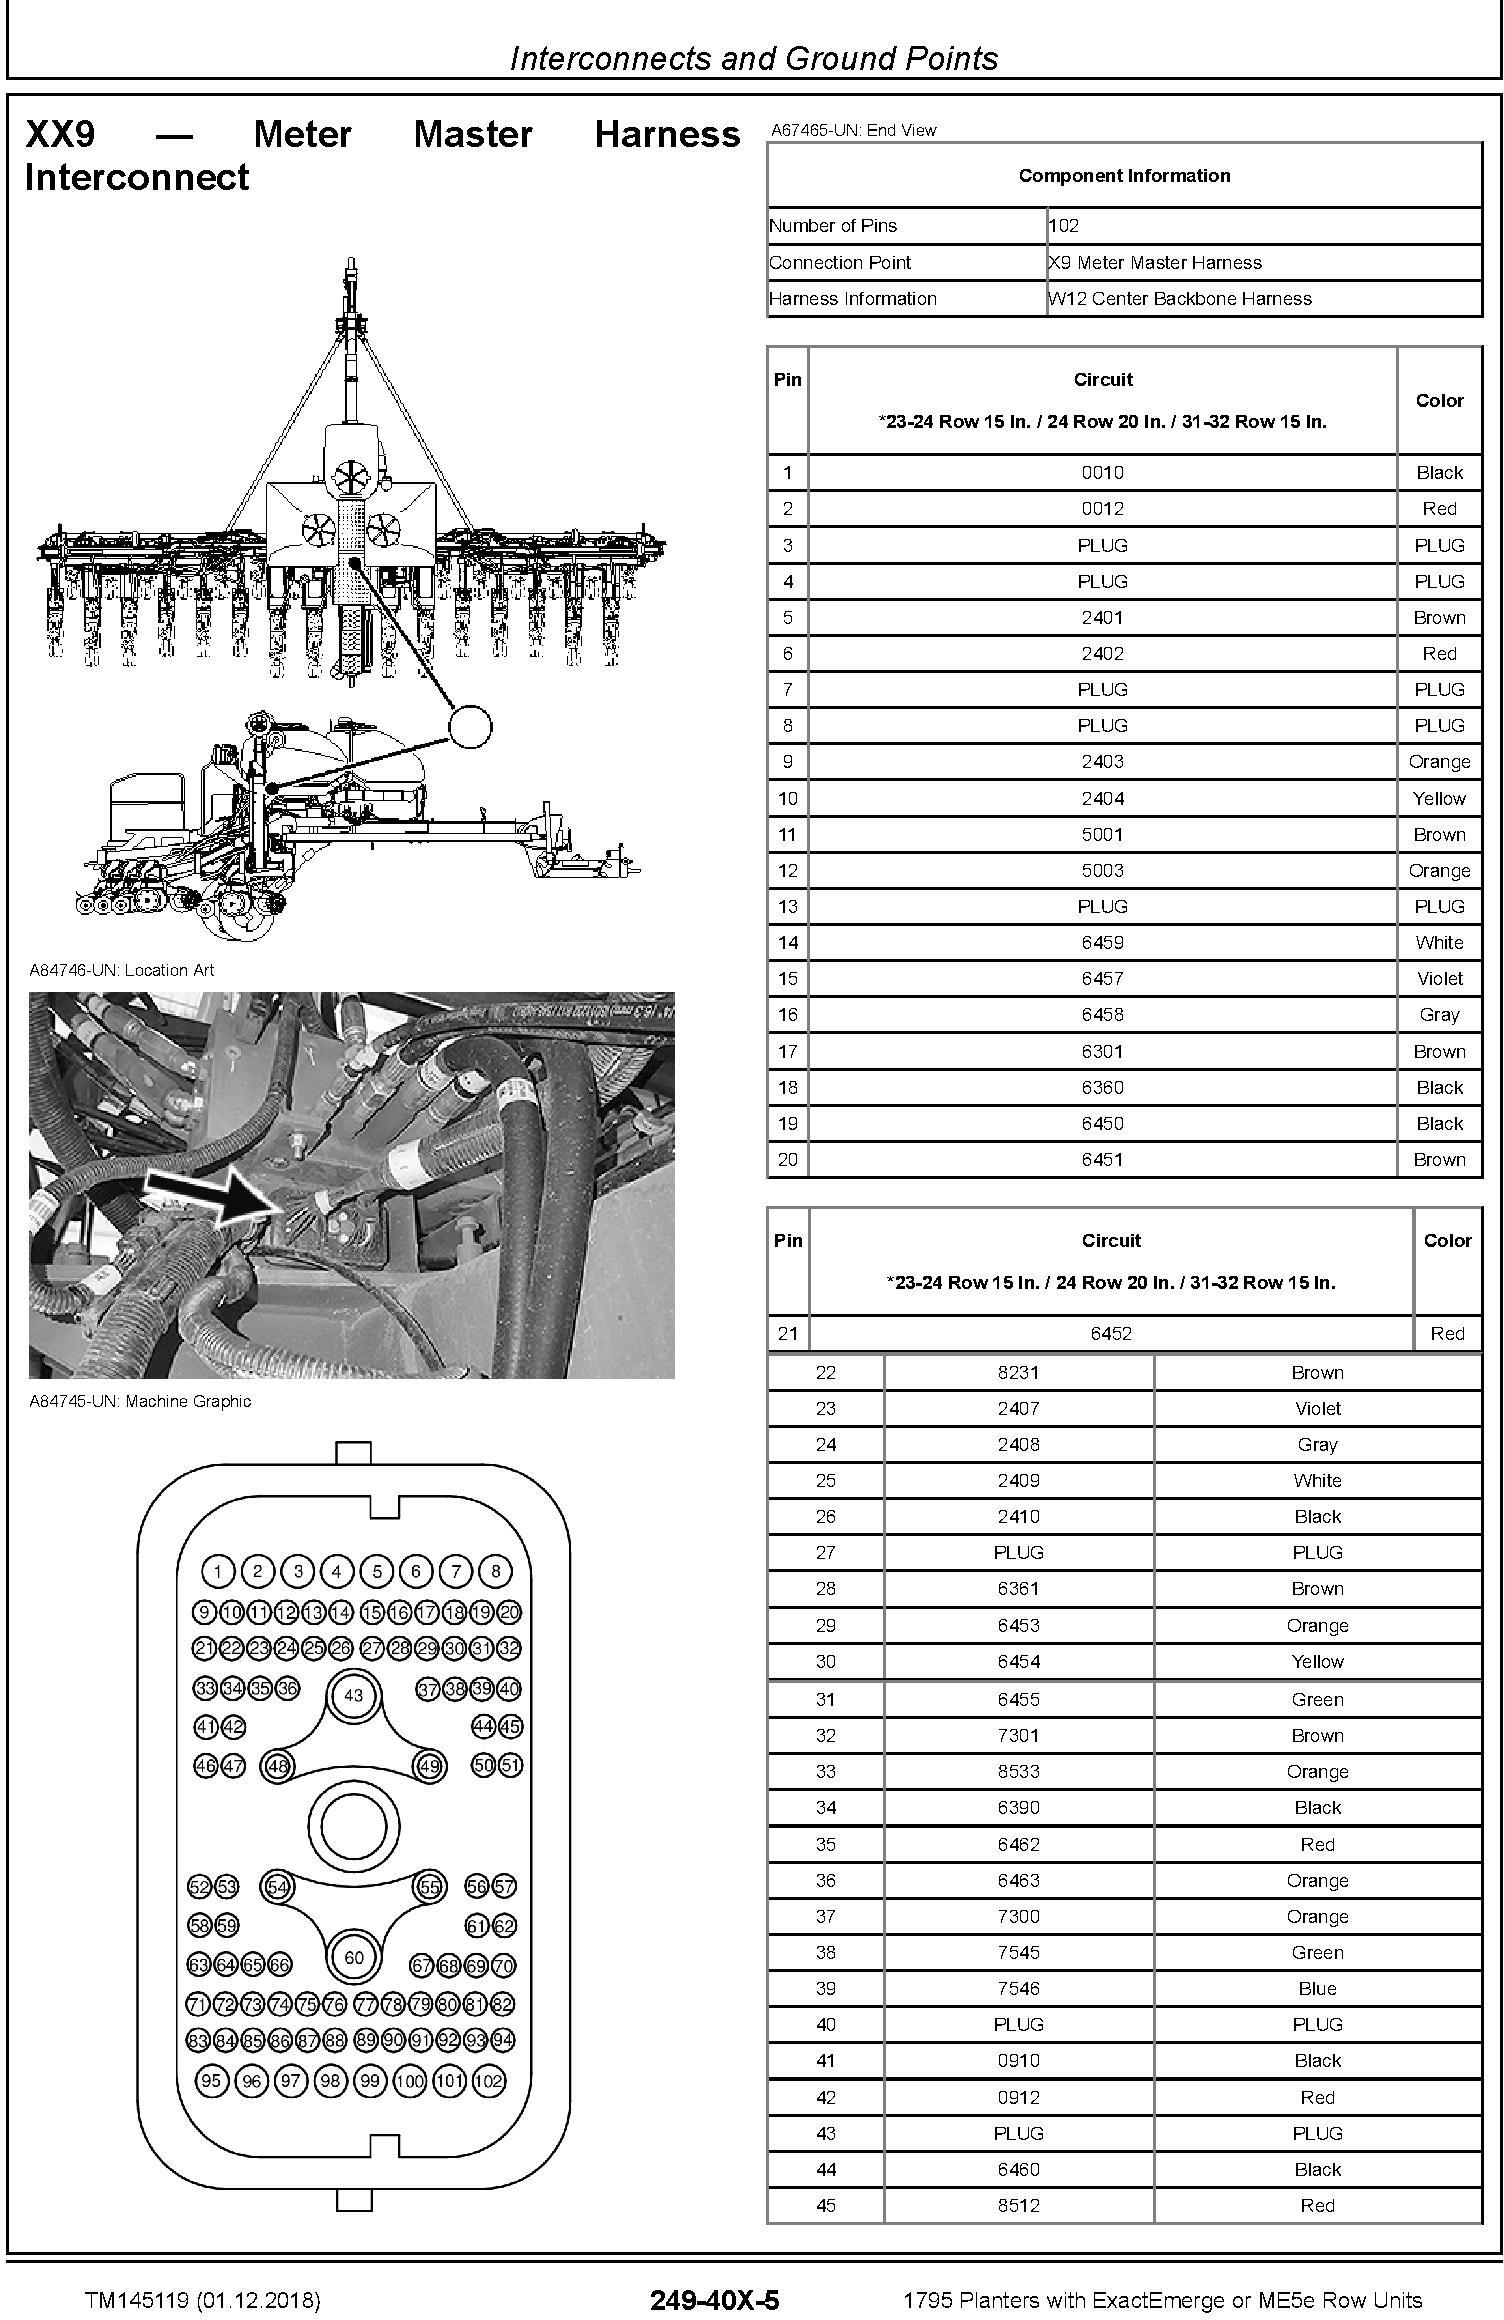 John Deere 1795 Planters with ExactEmerge or ME5e Row Units Diagnostic Technical Manual (TM145119) - 1